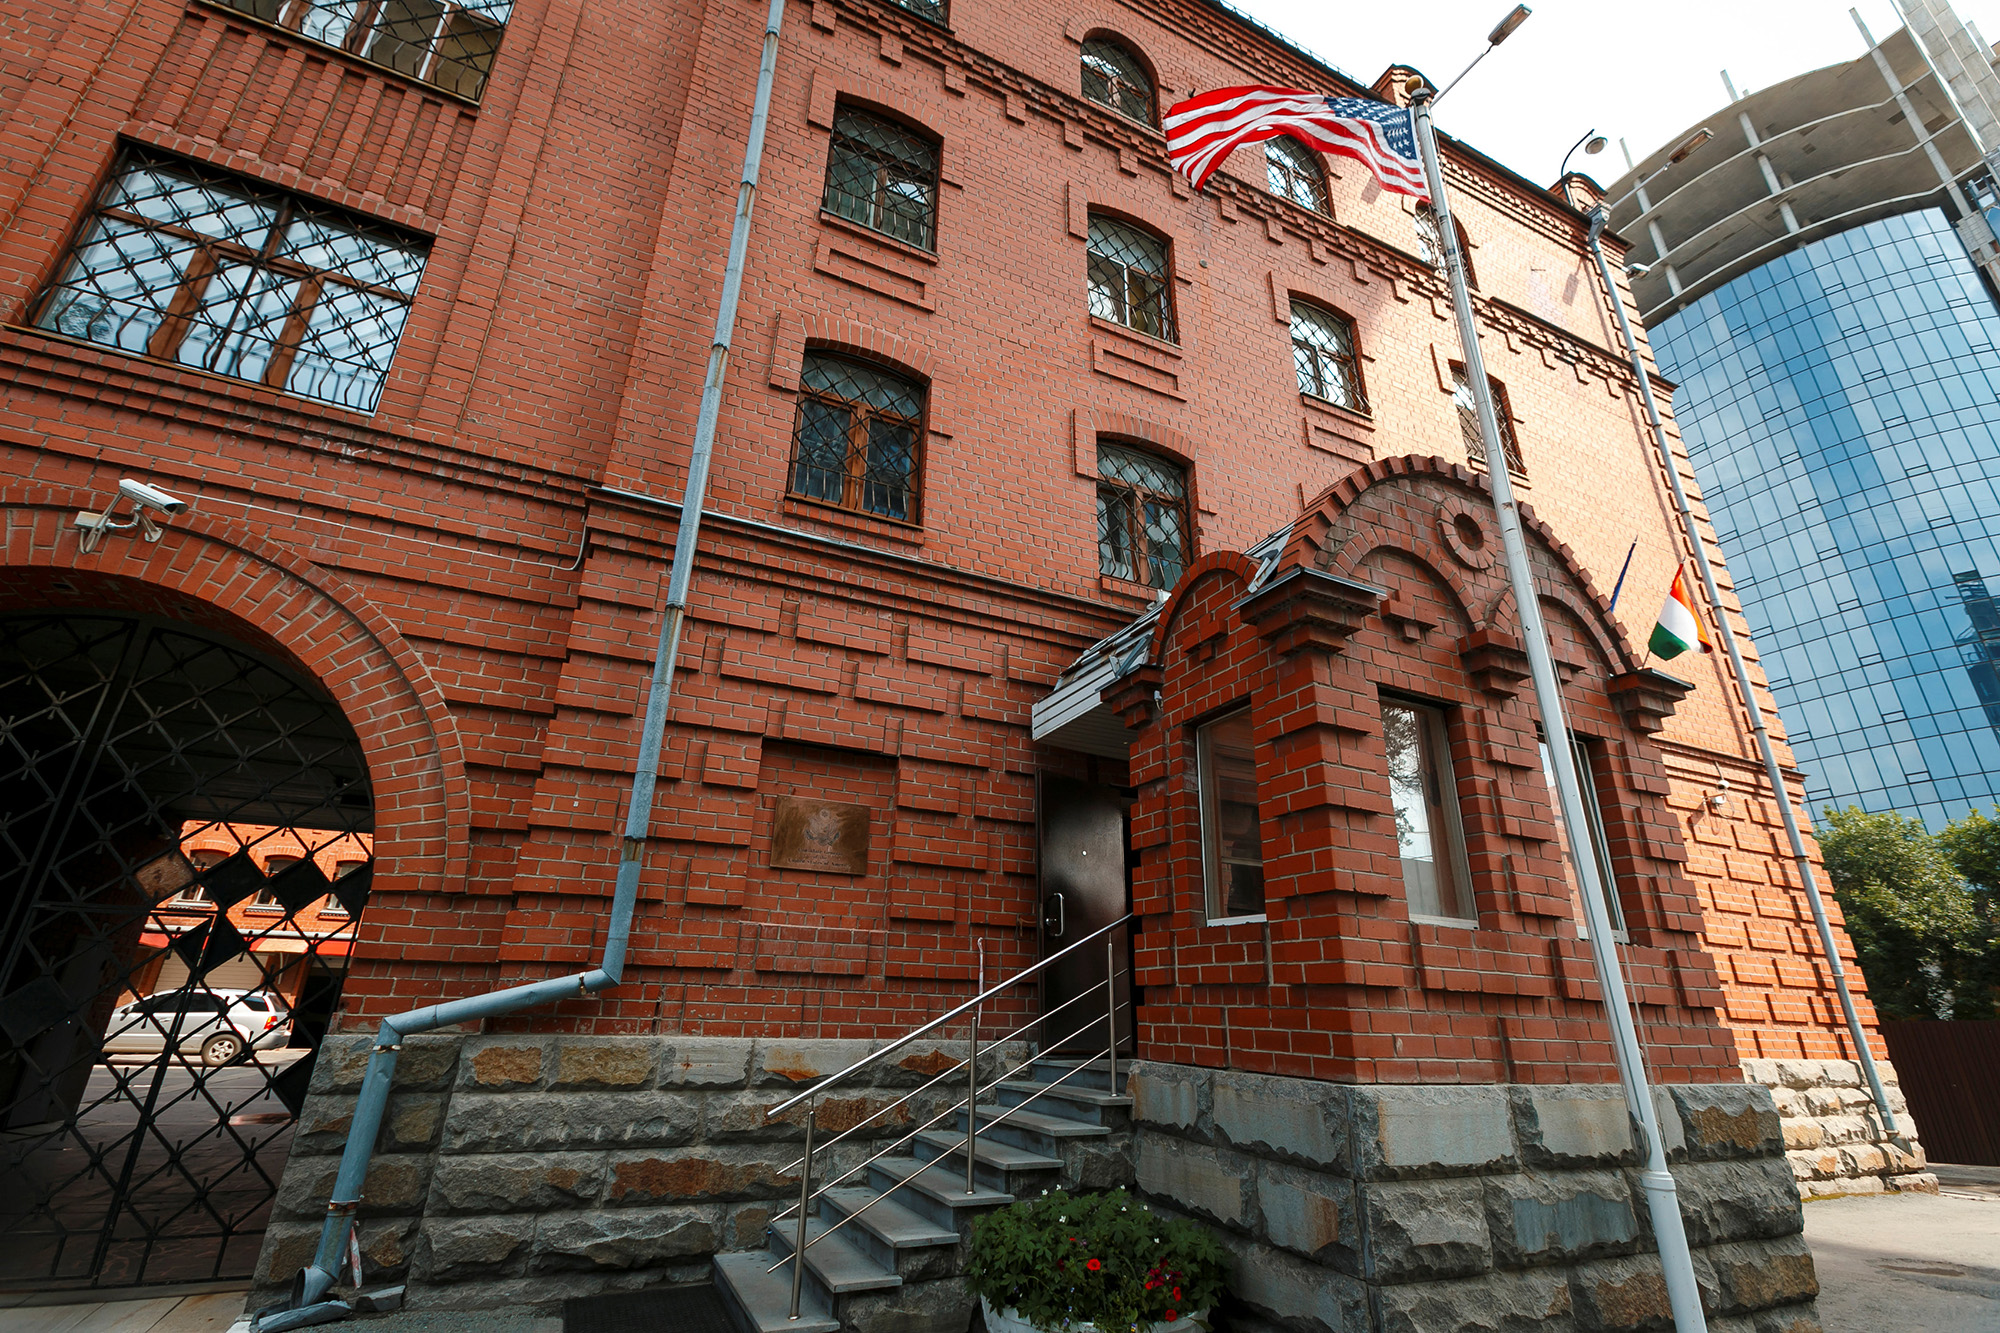 US to close two Russia consulates, State Department says